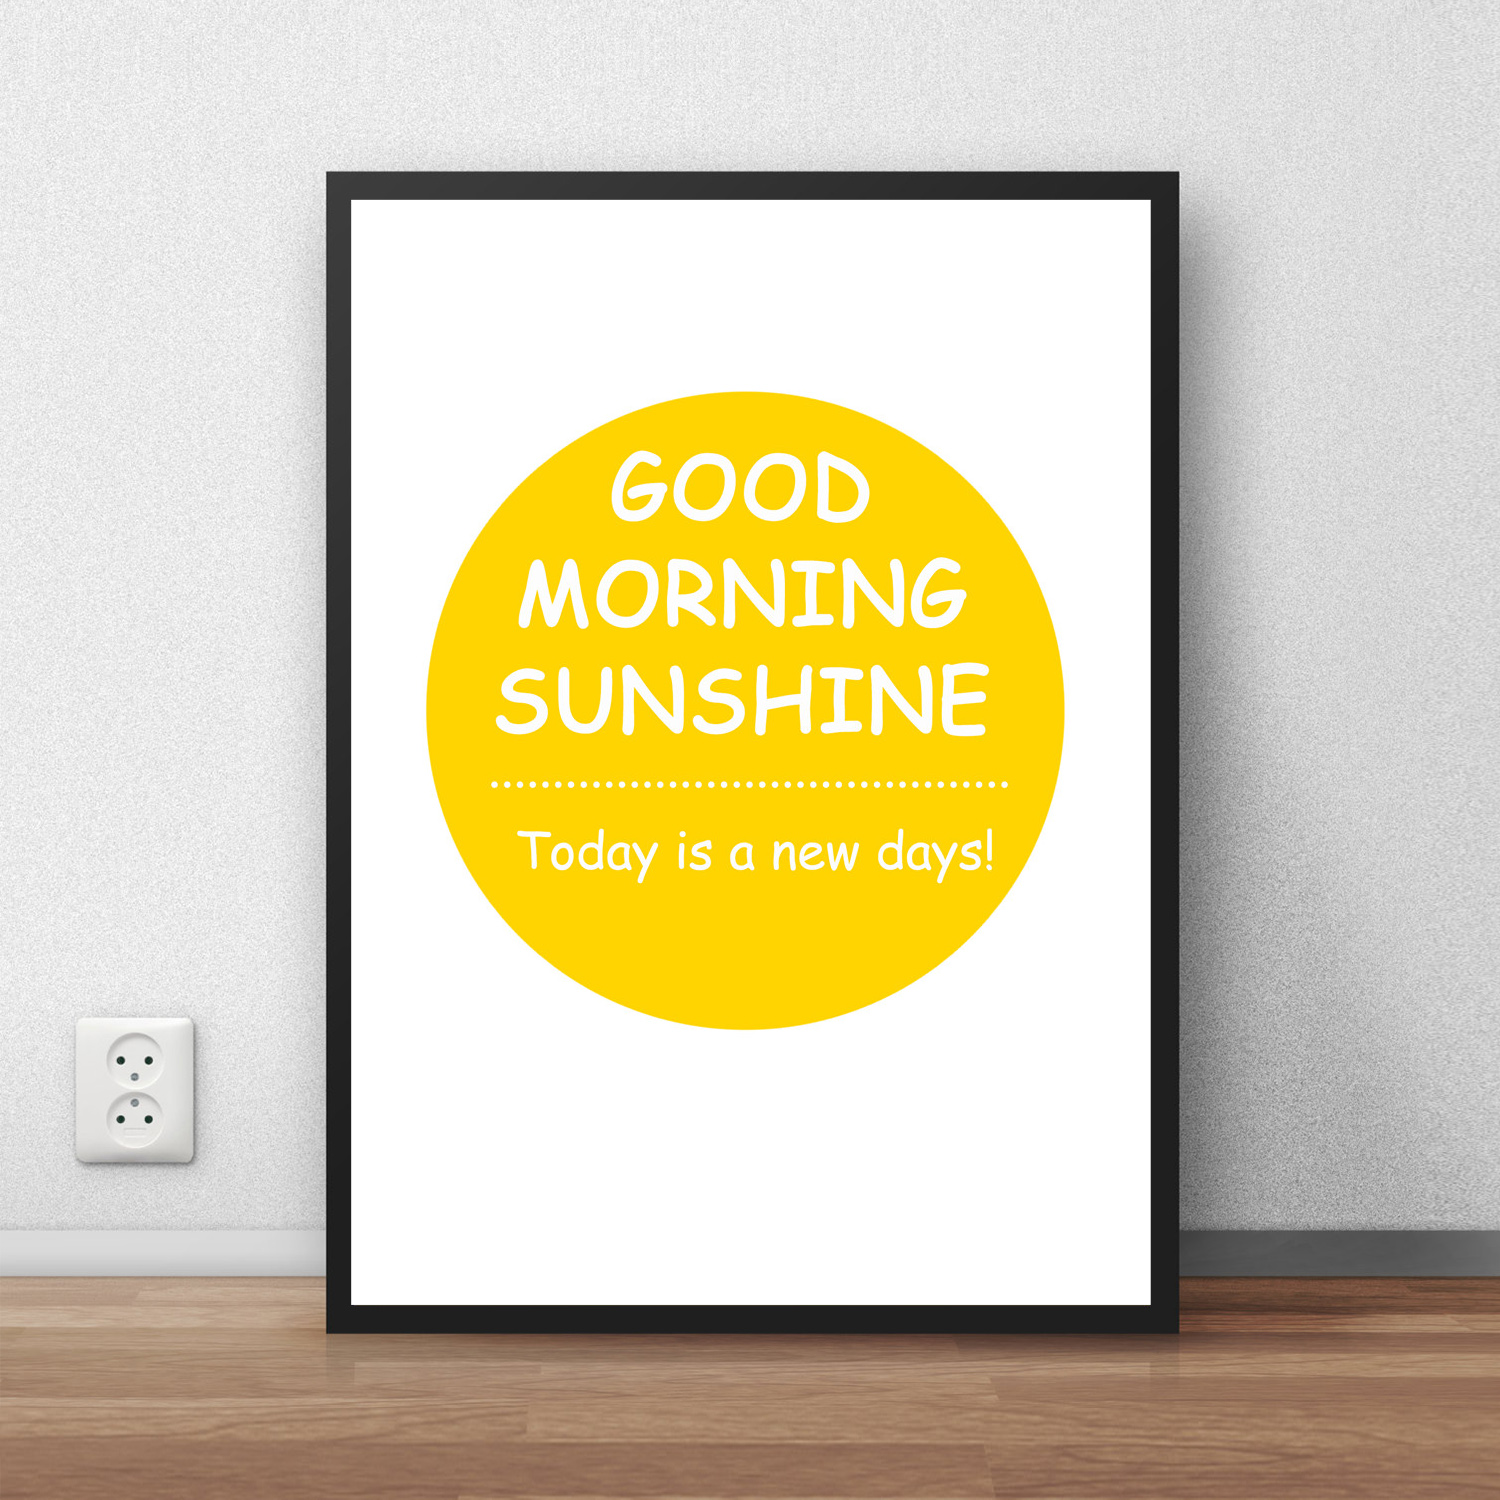 GOOD MORNING Slogan Chart Classic Vintage Poster Retro Kraft PaperAntique RETRO Wall Sticker Living Room HOUSE Decor BAR CAFE